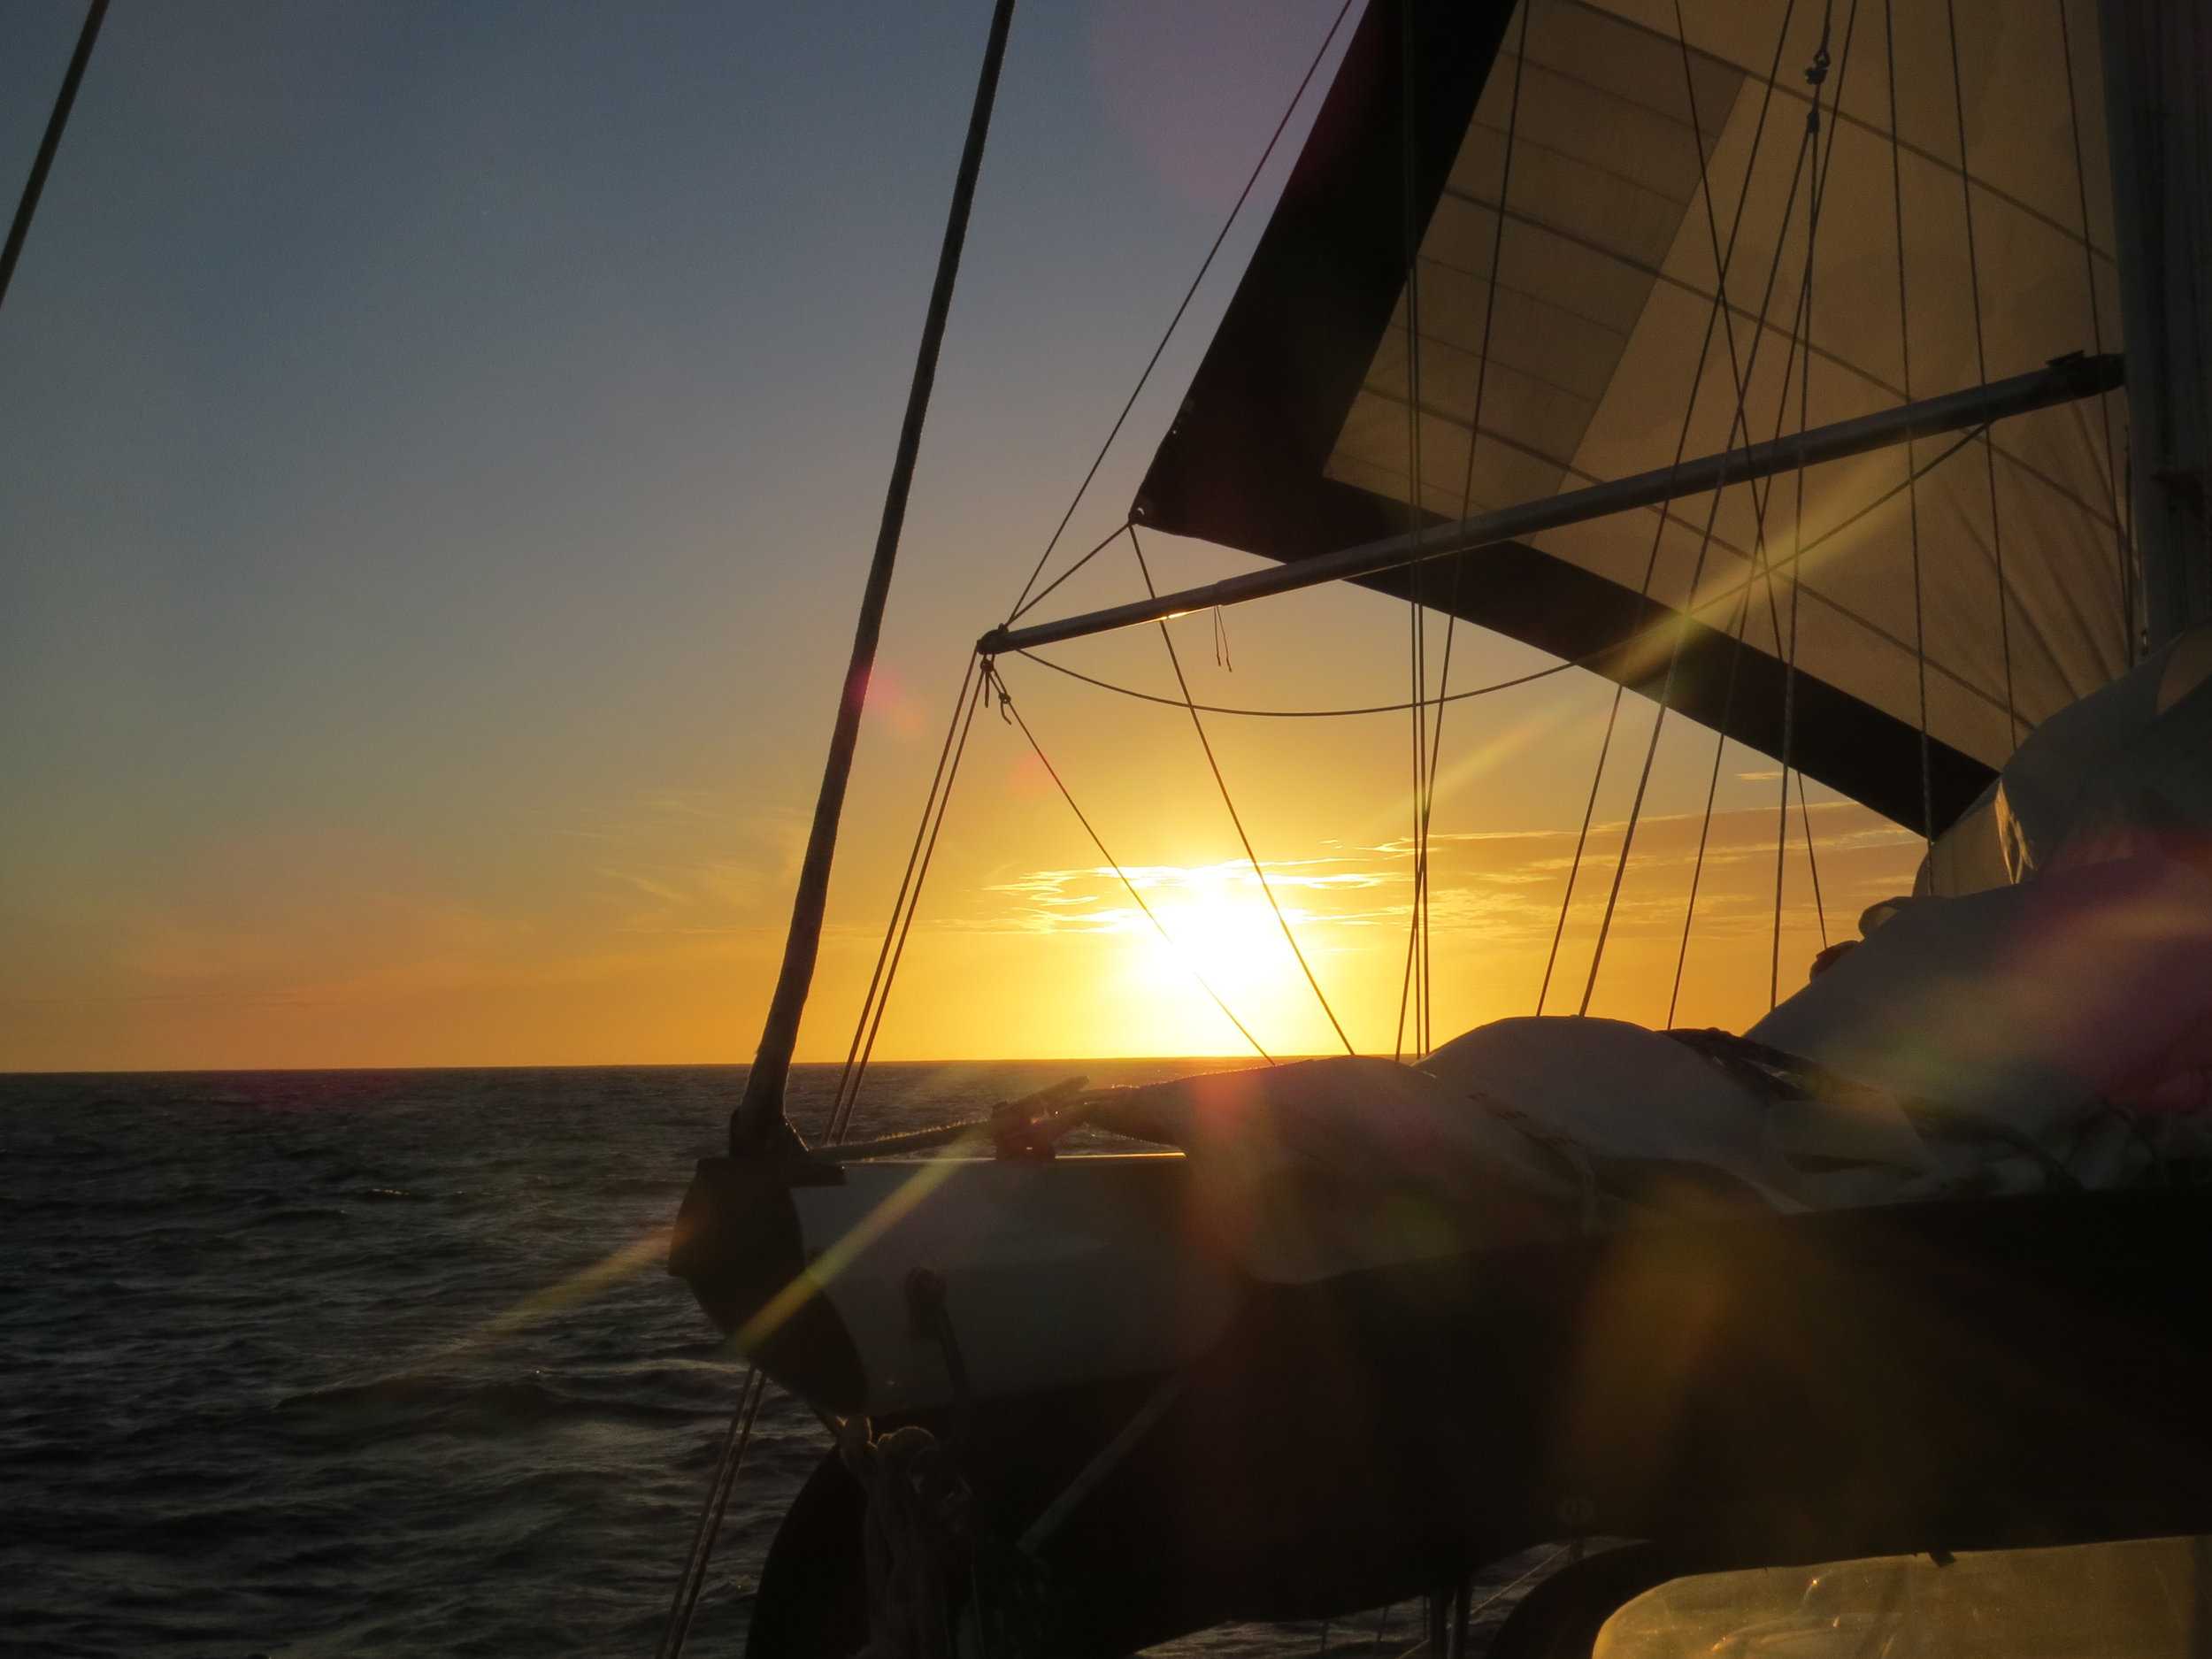 Getting ready to sail off into the sunset ... but first, give Nine of Cups her new name